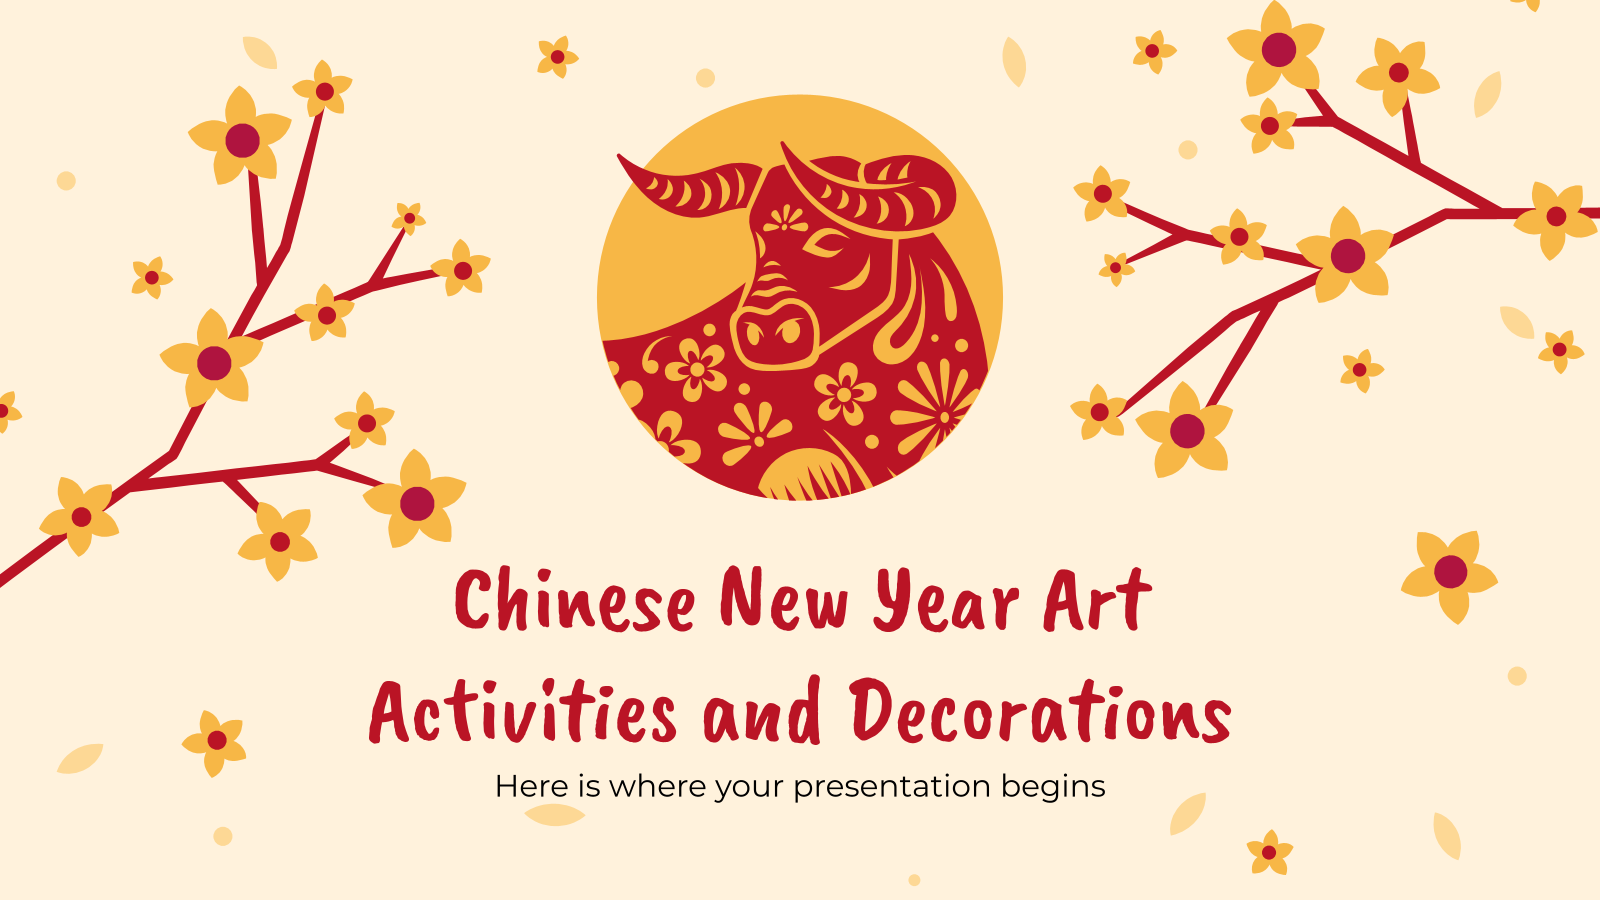 Chinese New Year Art Activities and Decorations presentation template